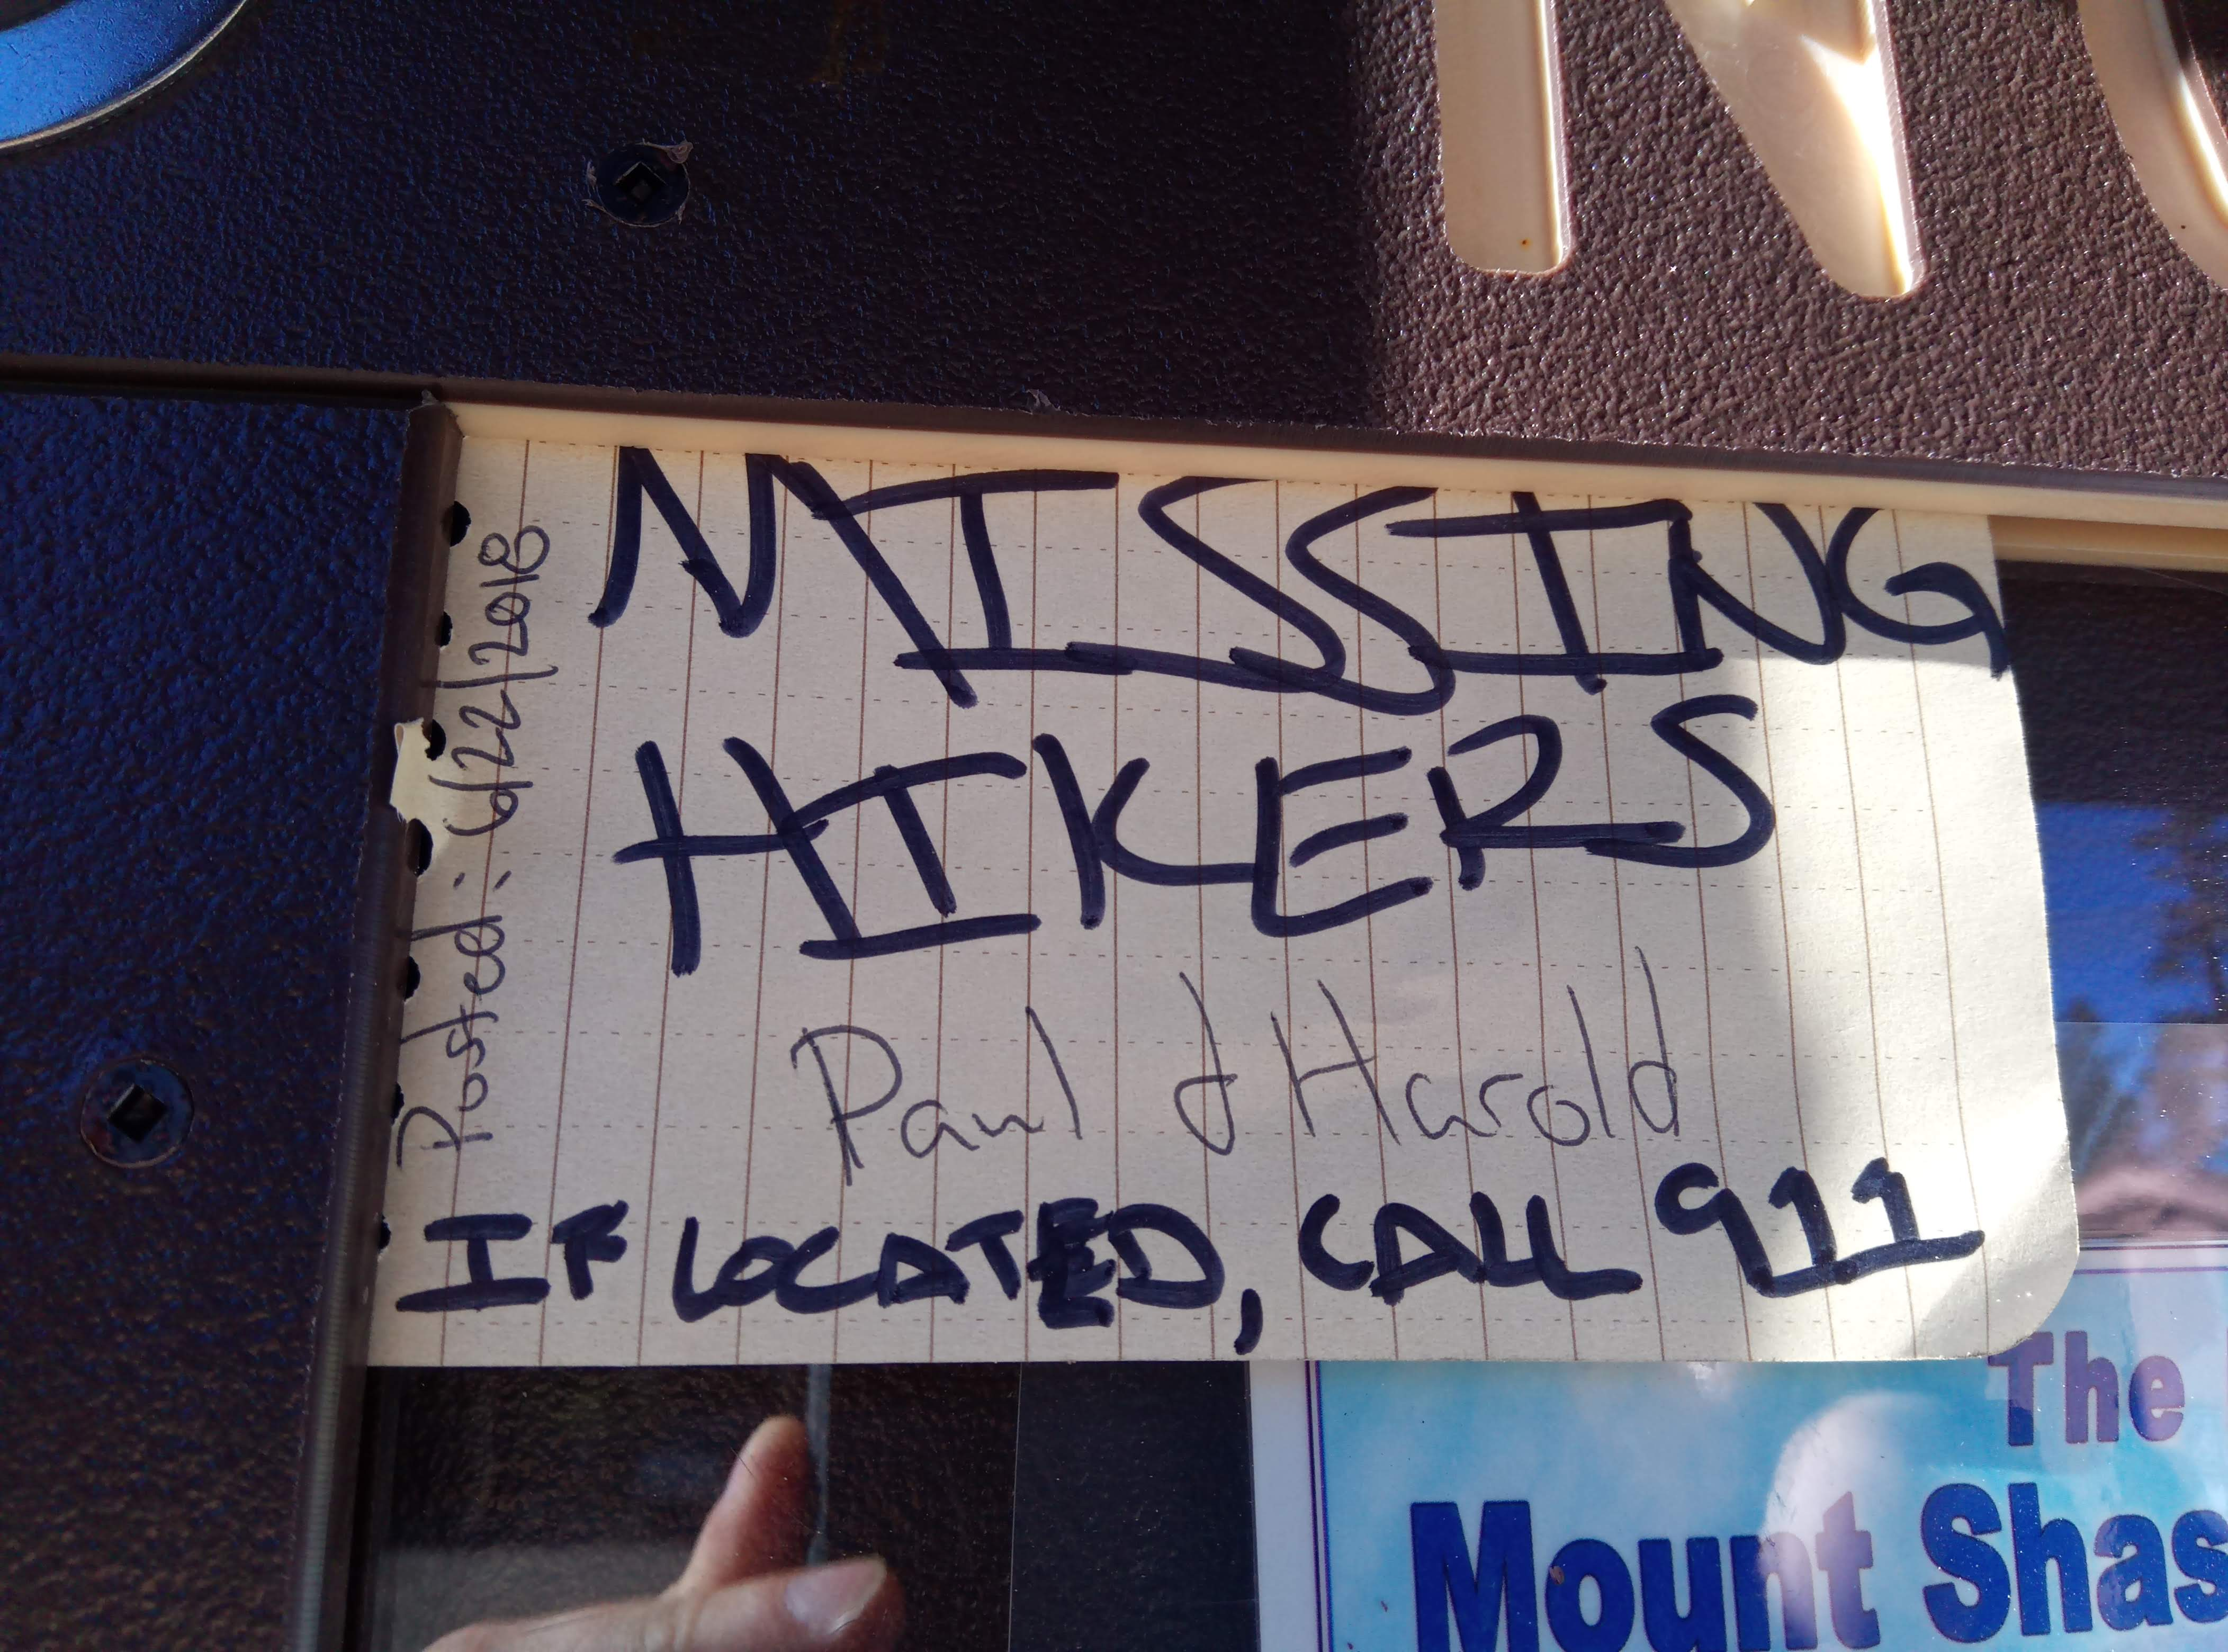 Posting about the missing hikers